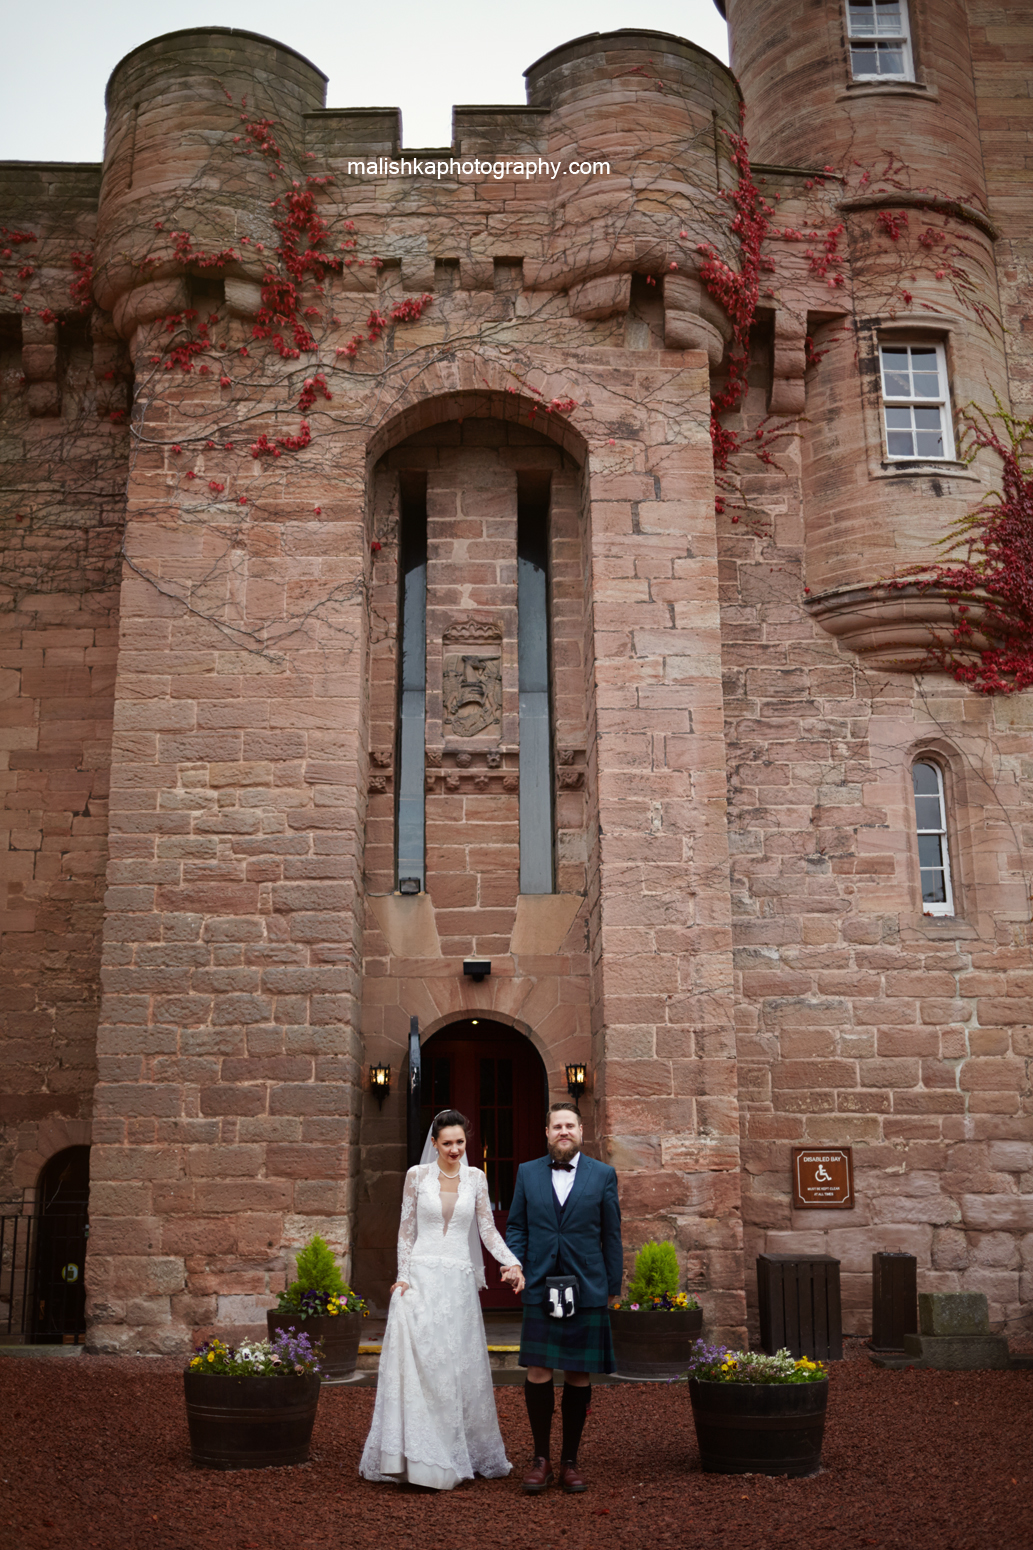 Entrance to the  Dalhousie Castle